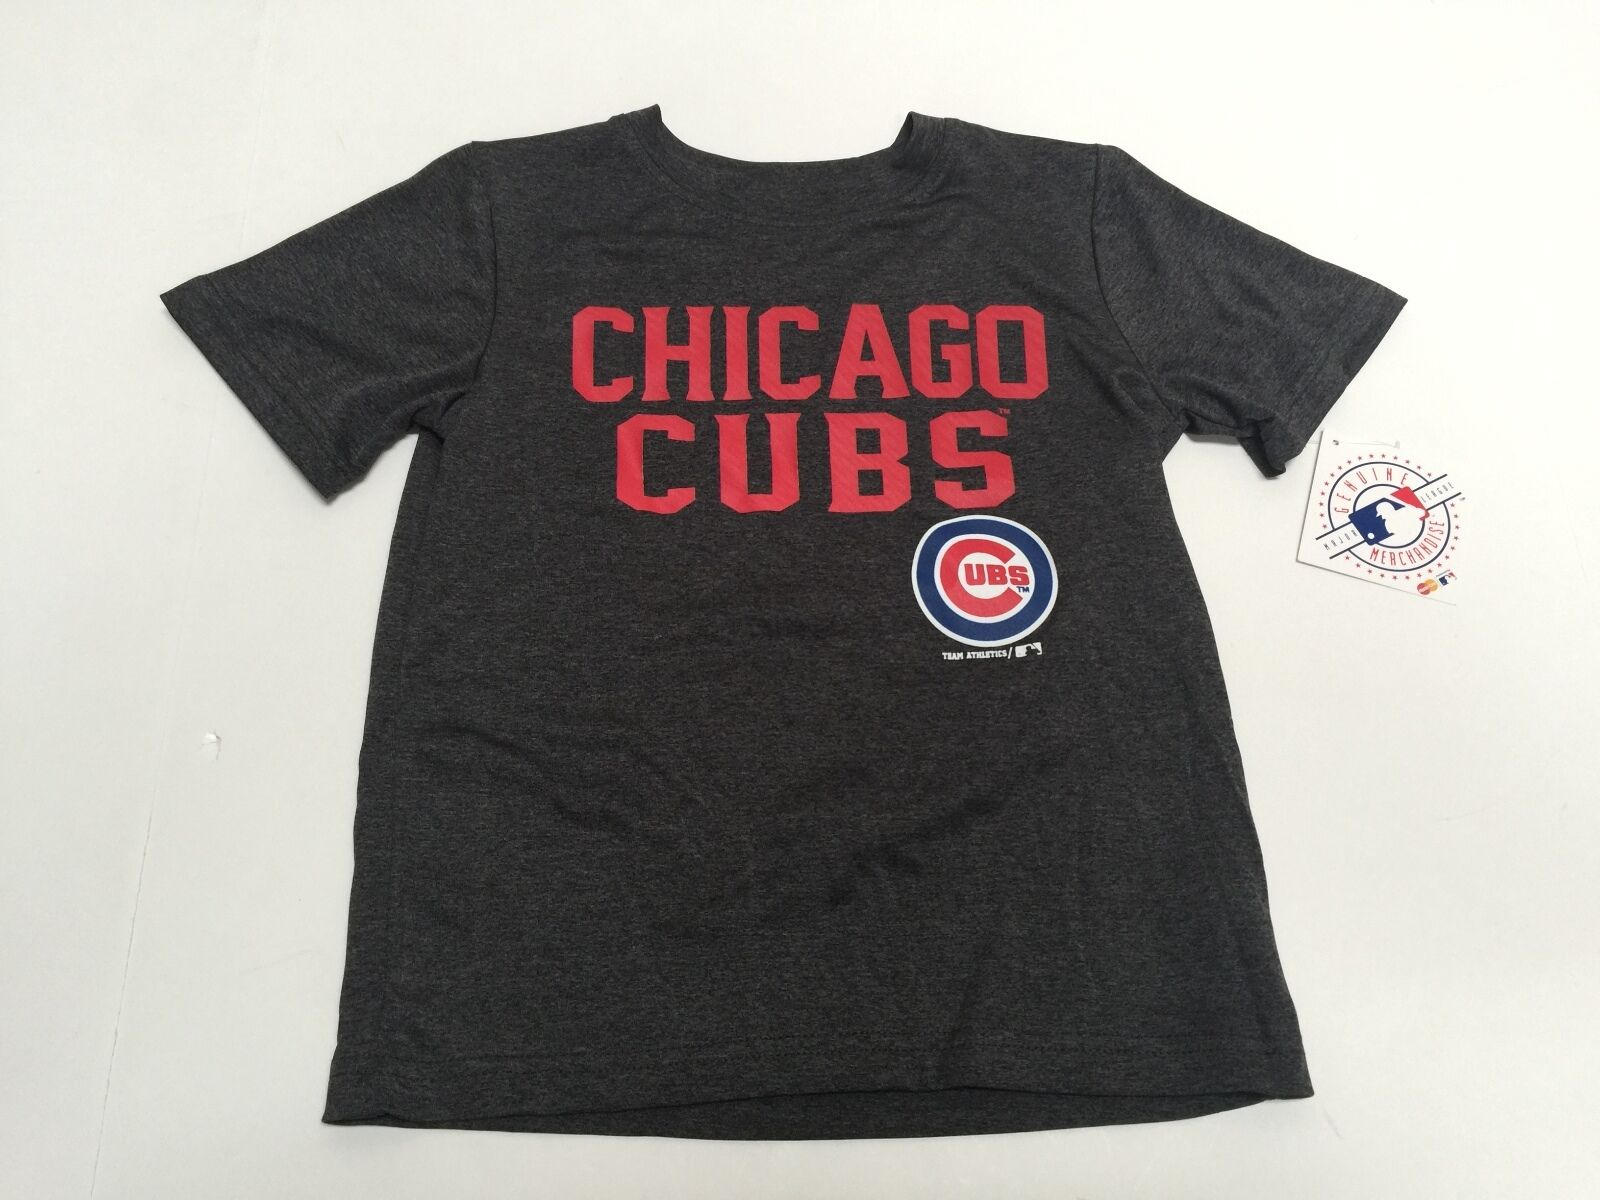 91e488e014b Chicago Cubs Official Merchandise MLB Youth Kids Gray Athletic polyester  Shirt